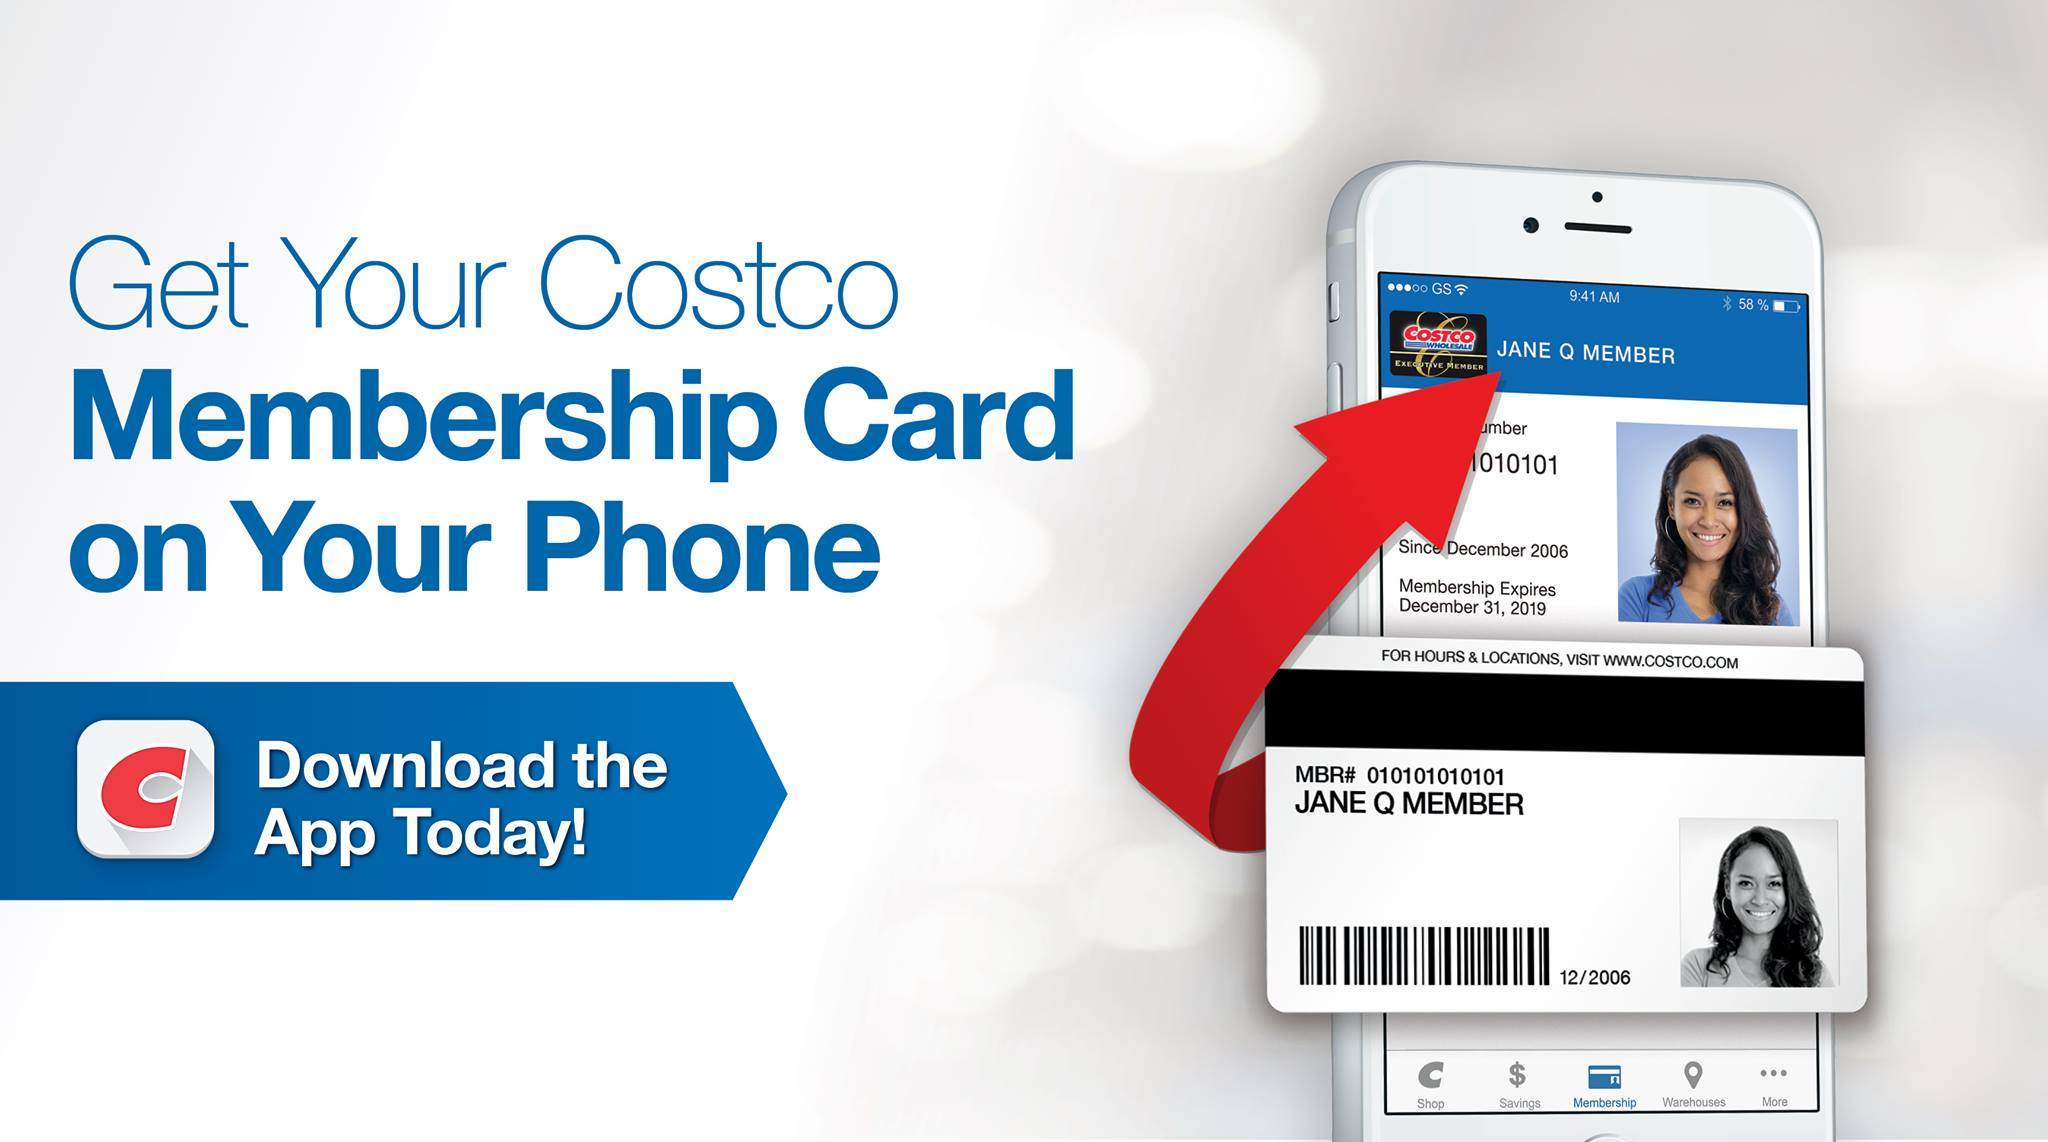 Get Your Costco Membership on Your Phone